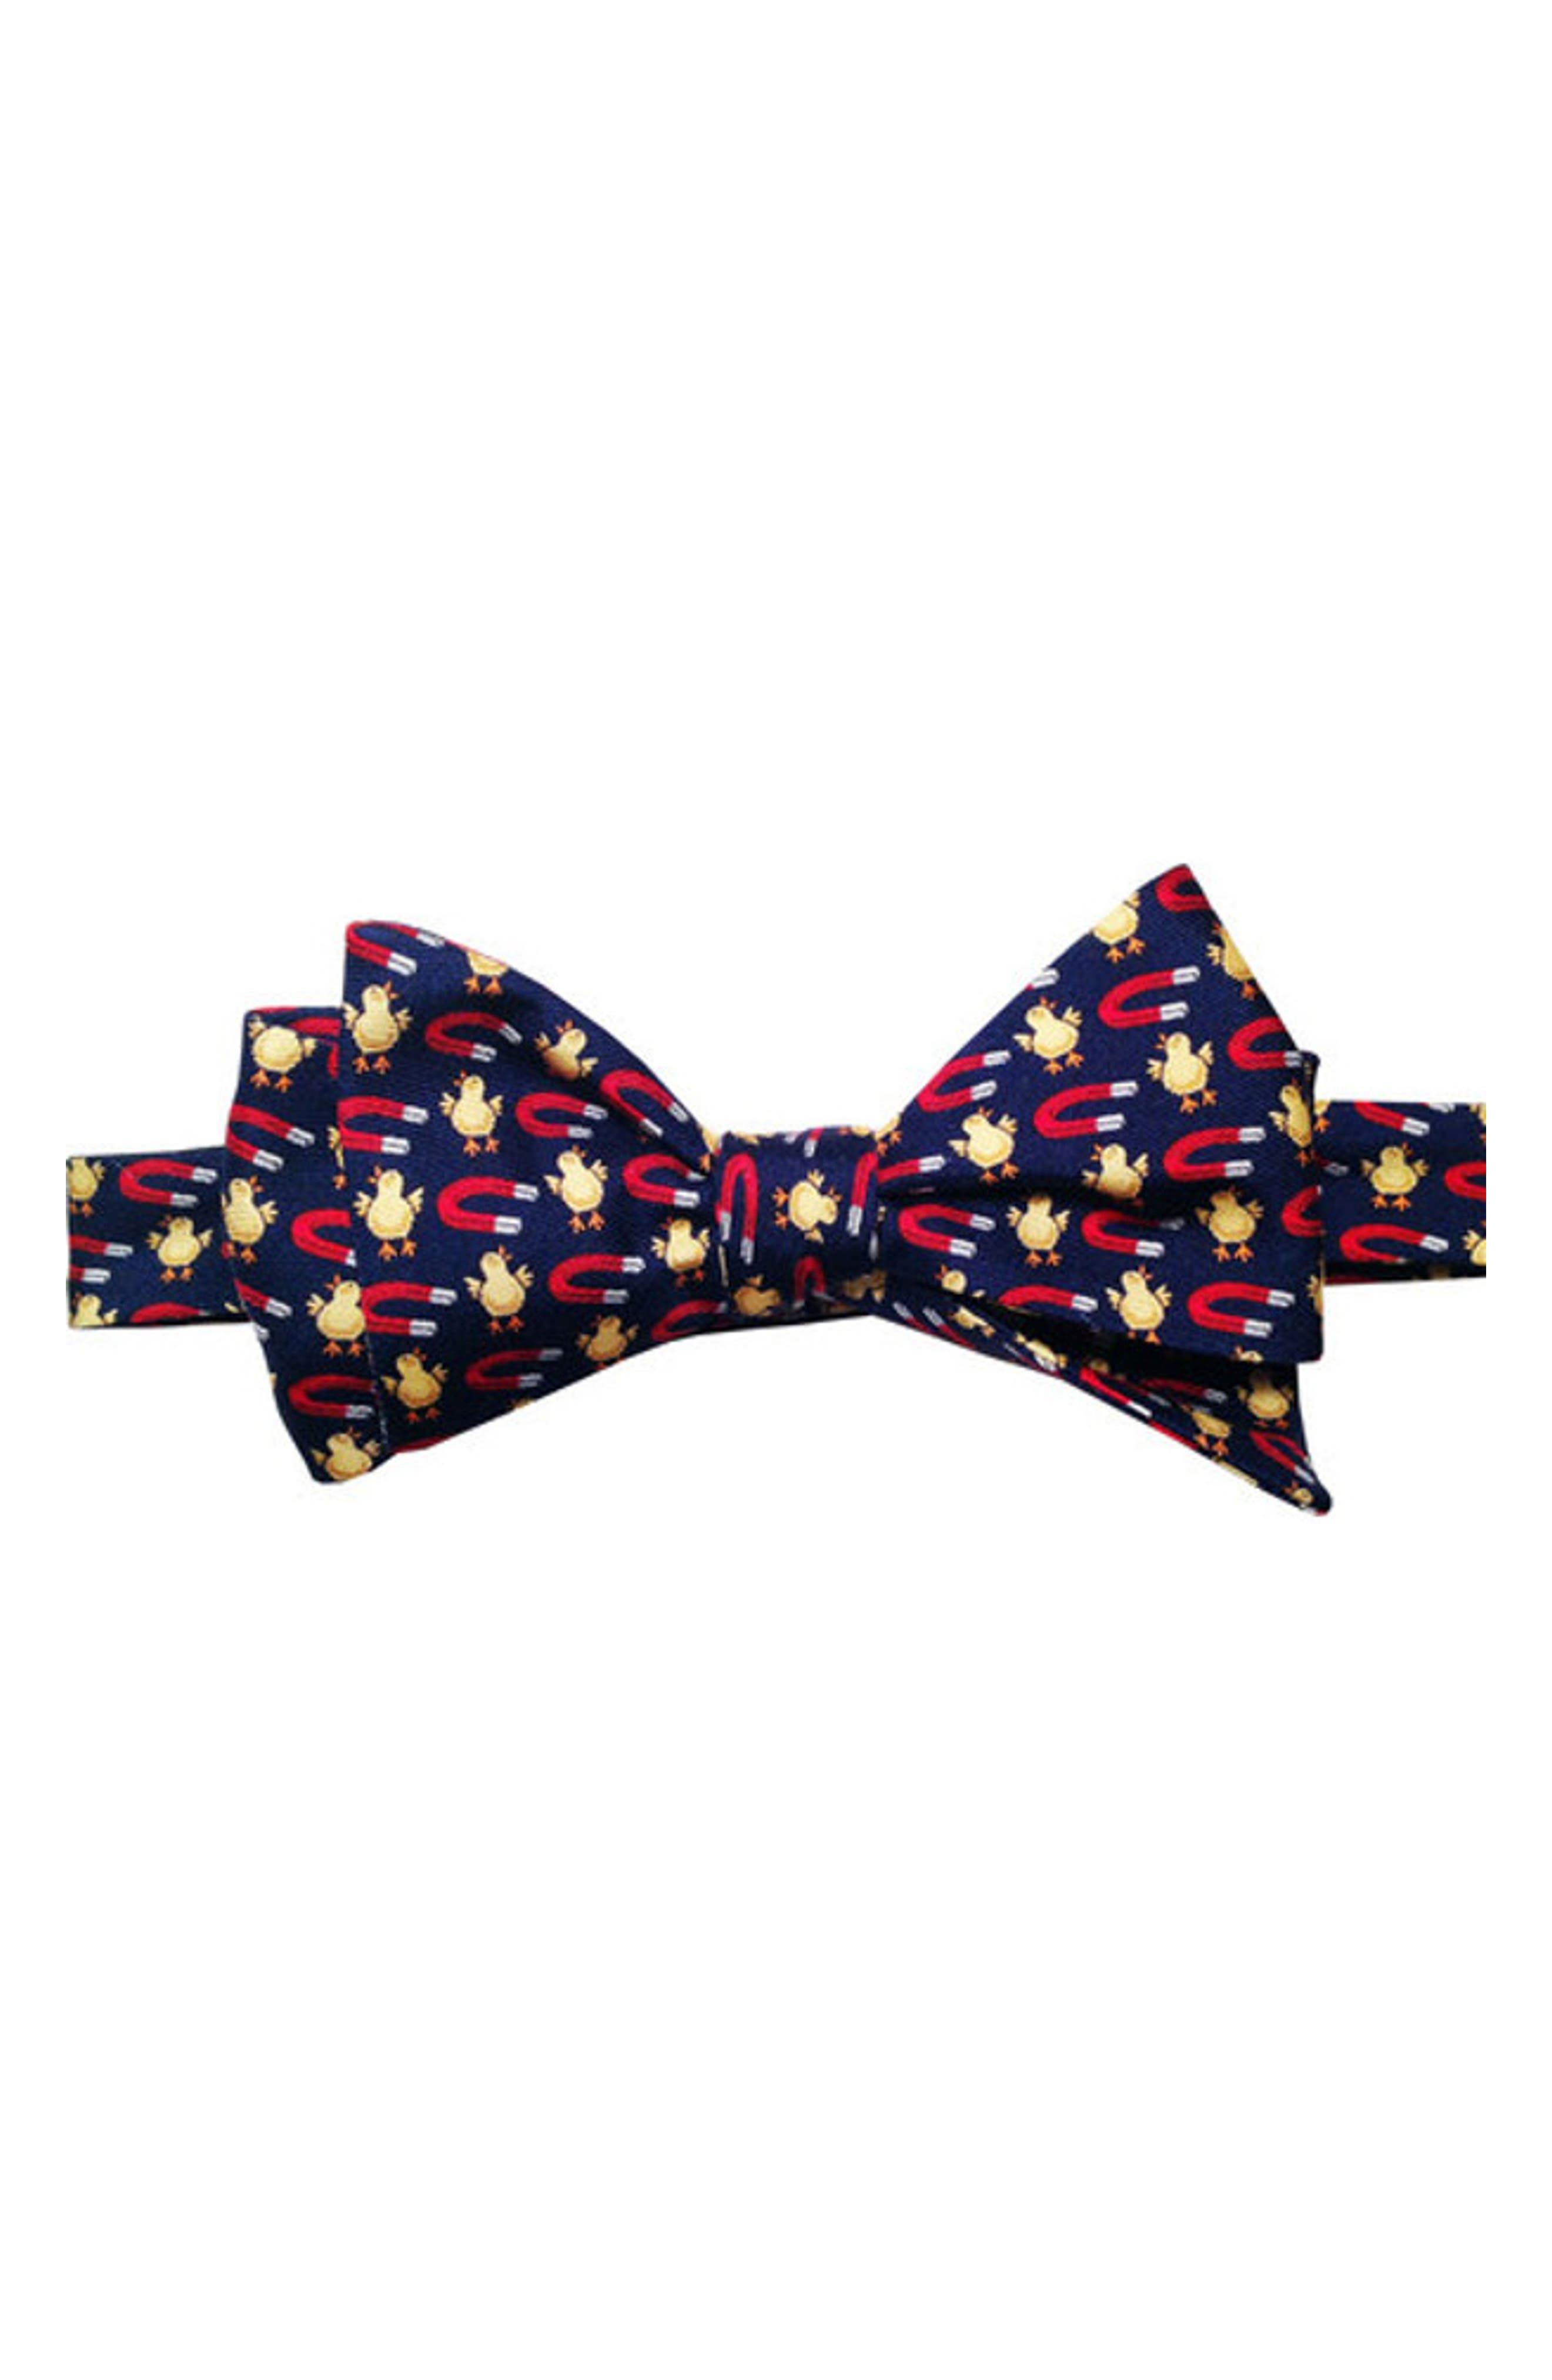 Chick Magnet Silk Bow Tie,                             Main thumbnail 1, color,                             Navy